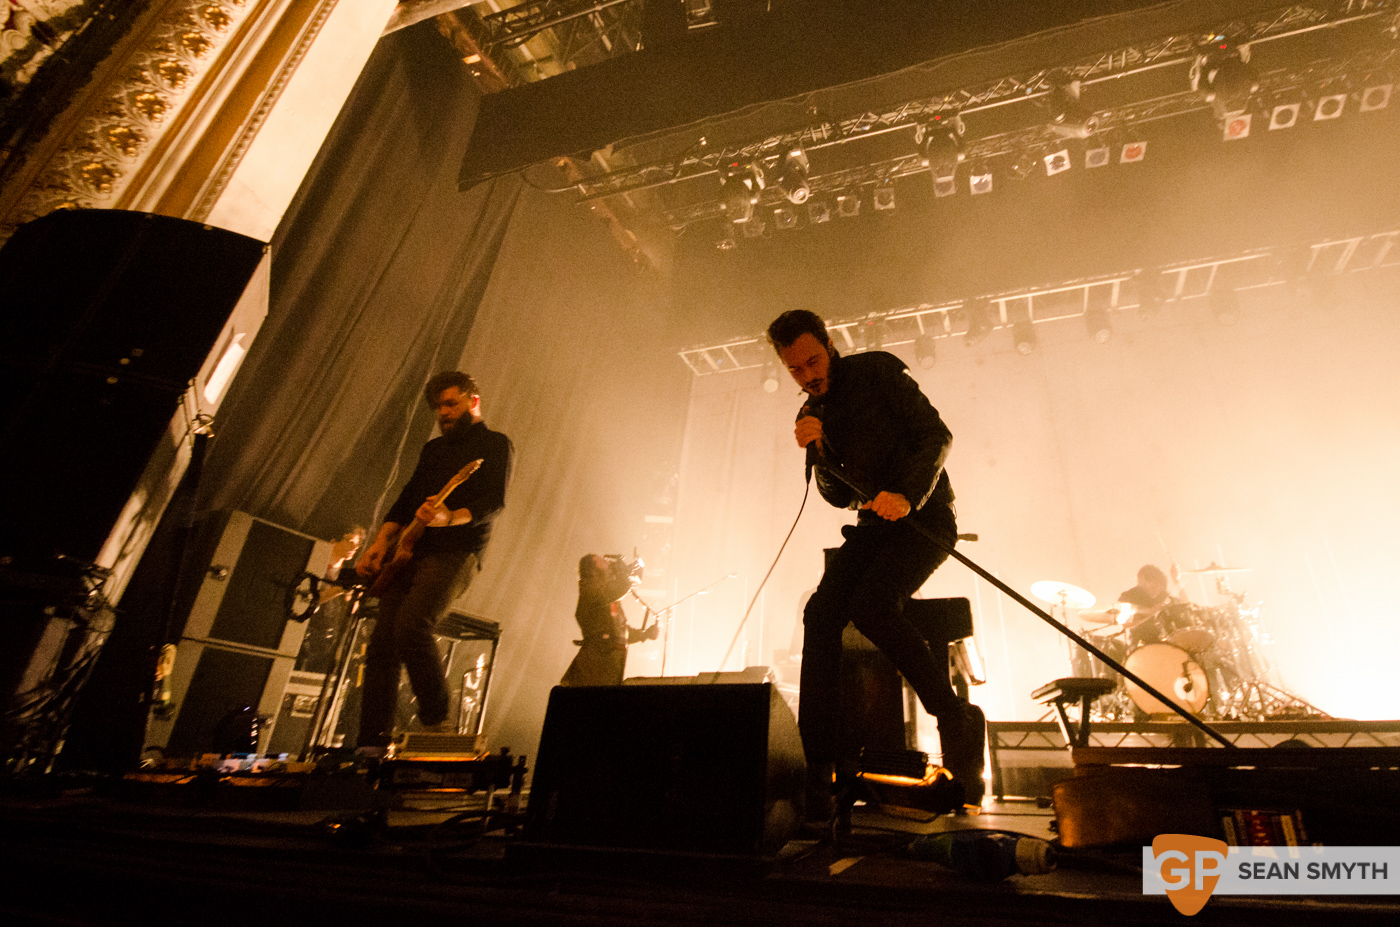 editors-at-the-olympia-theatre-by-sean-smyth-10-10-15-16-of-28_22077942062_o